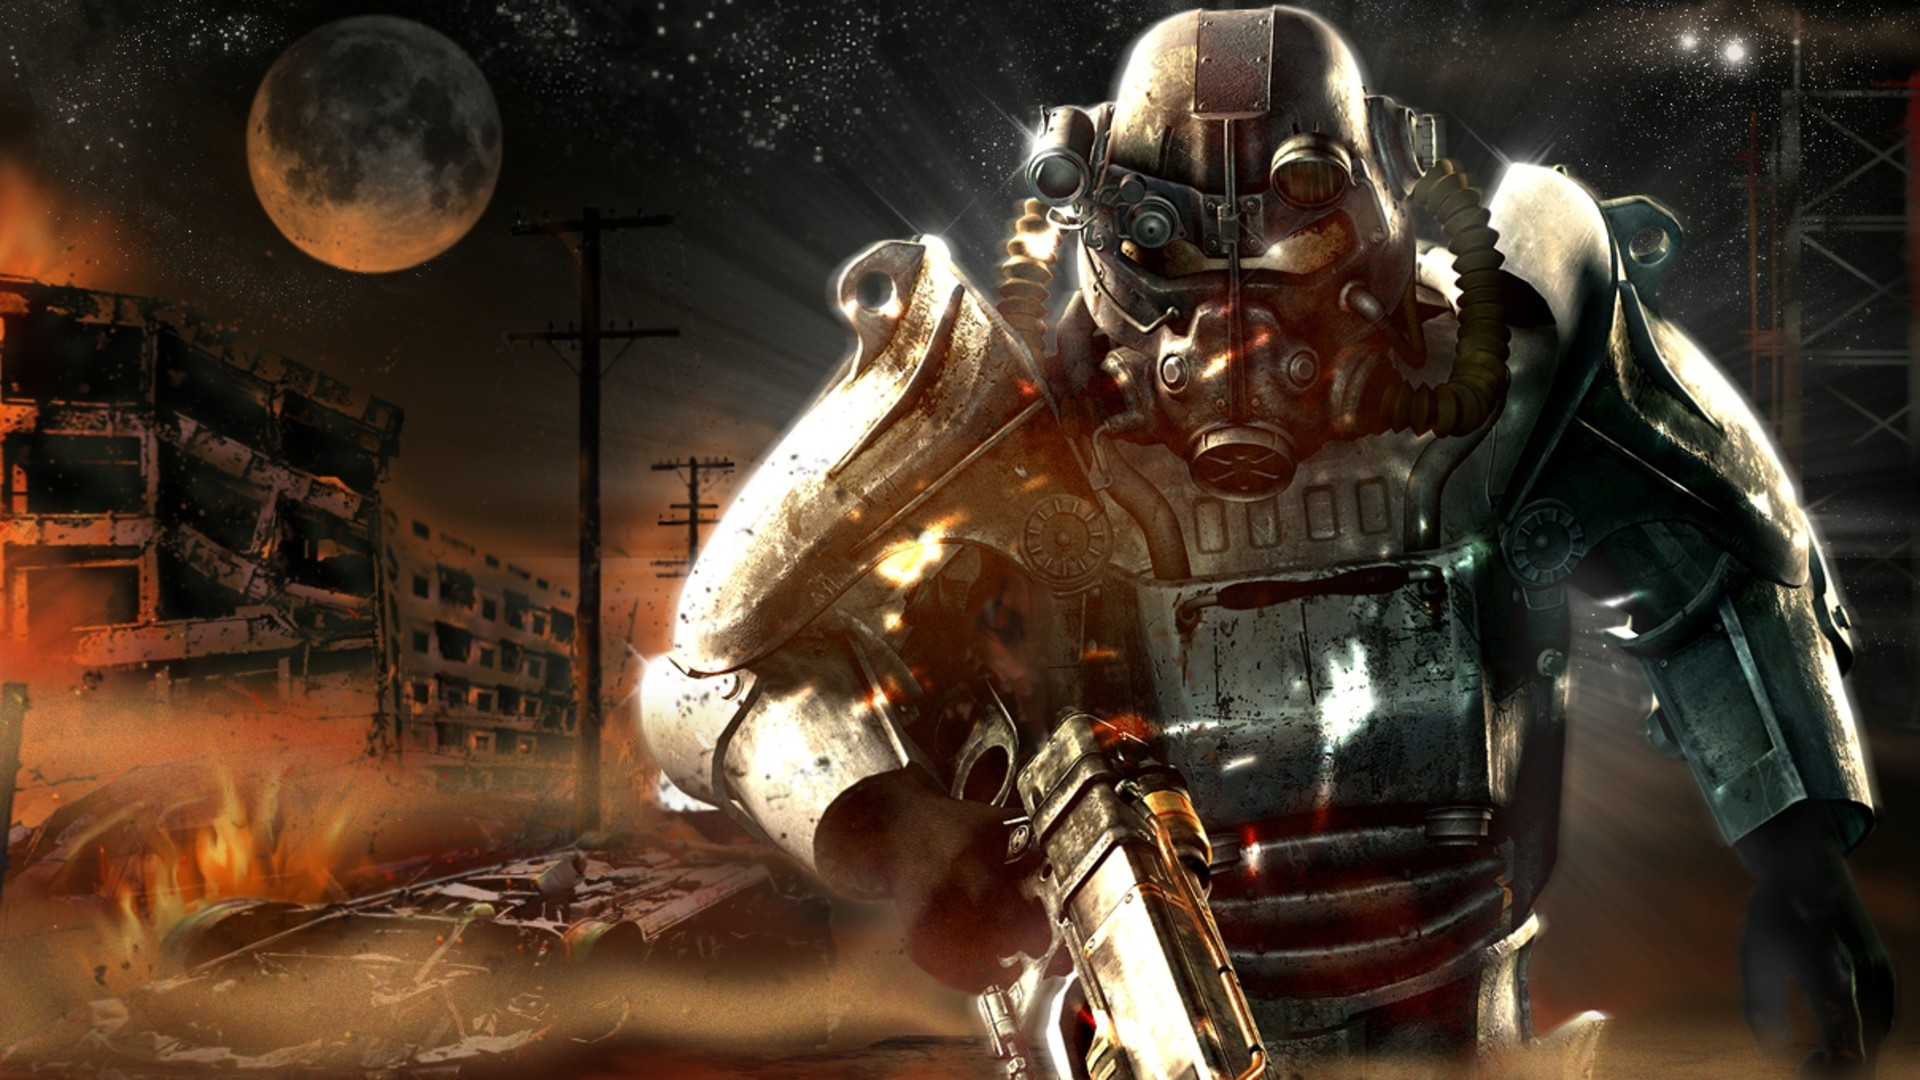 1920x1200 On October 2 2015 By Stephen Comments Off Fallout 4 HD